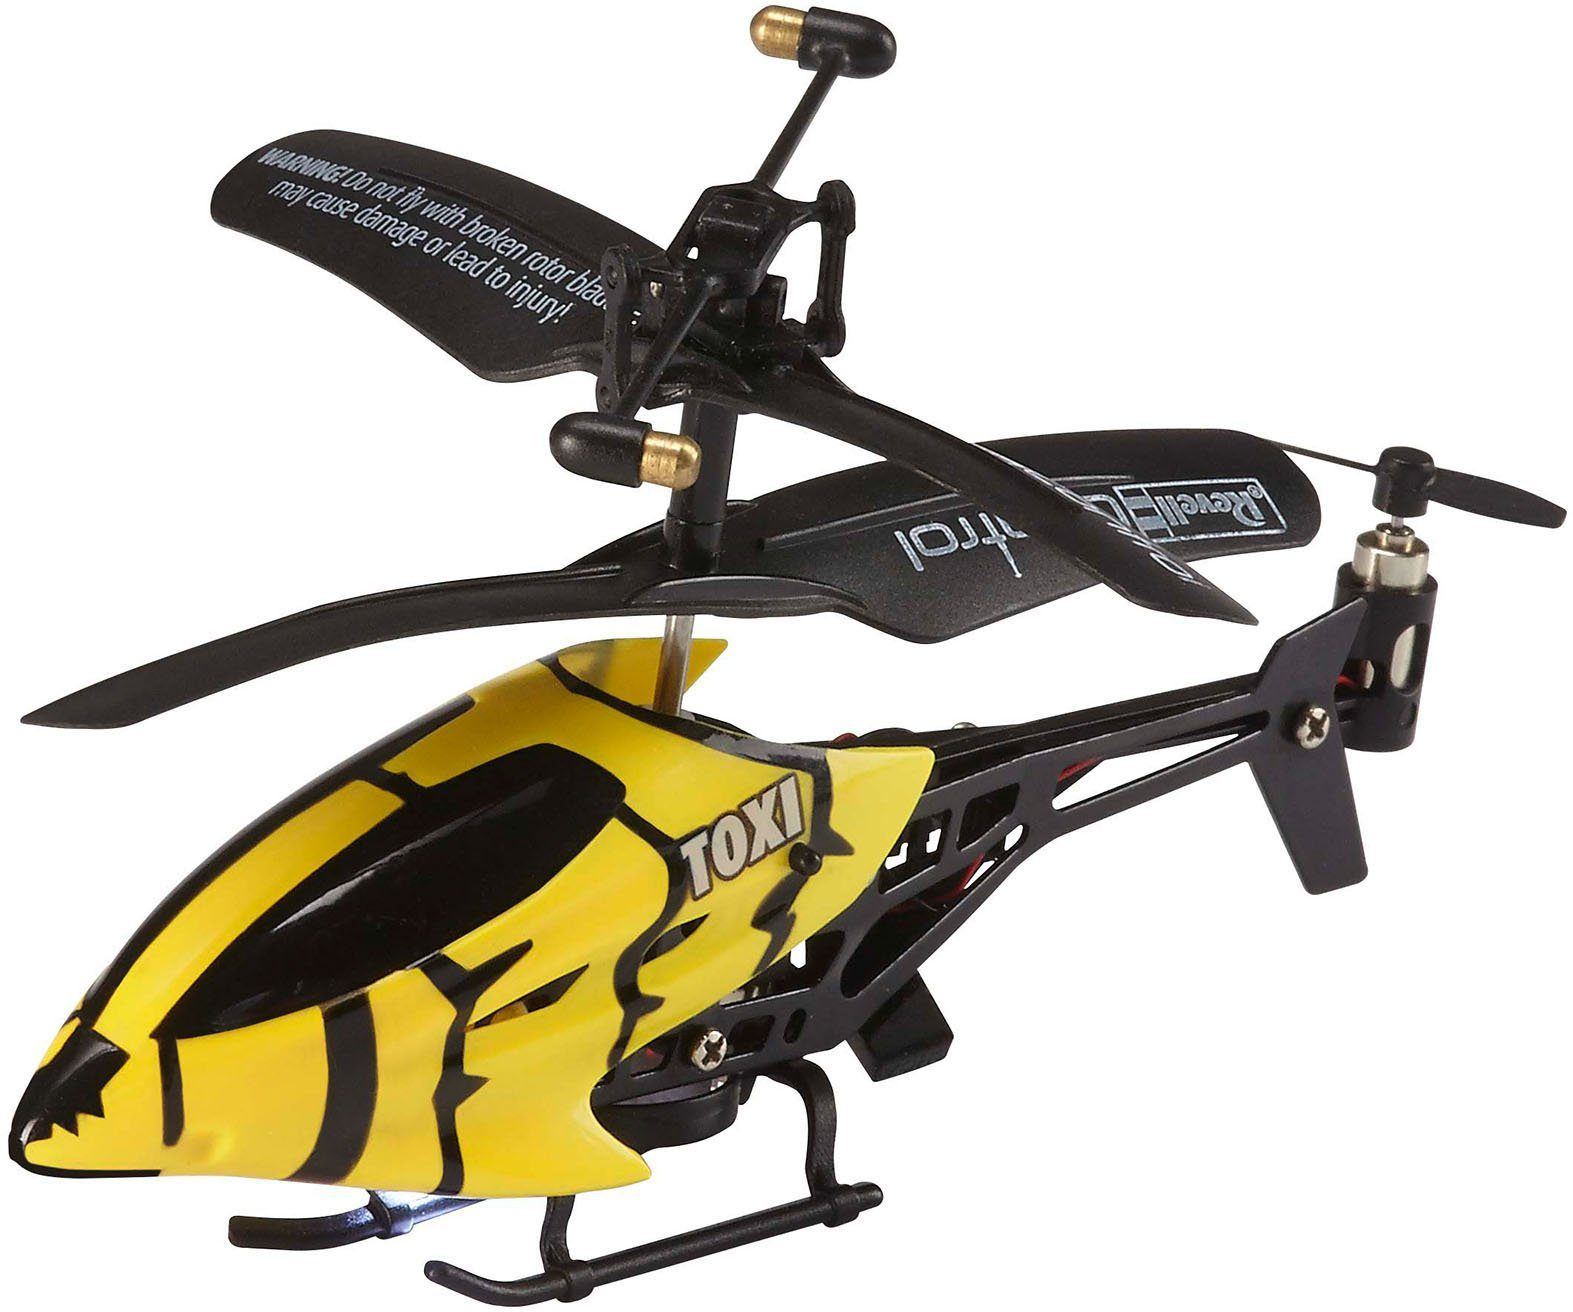 Revell RC Hubschrauber, »XS Helikopter Toxi 2,4 GHz, gelb«